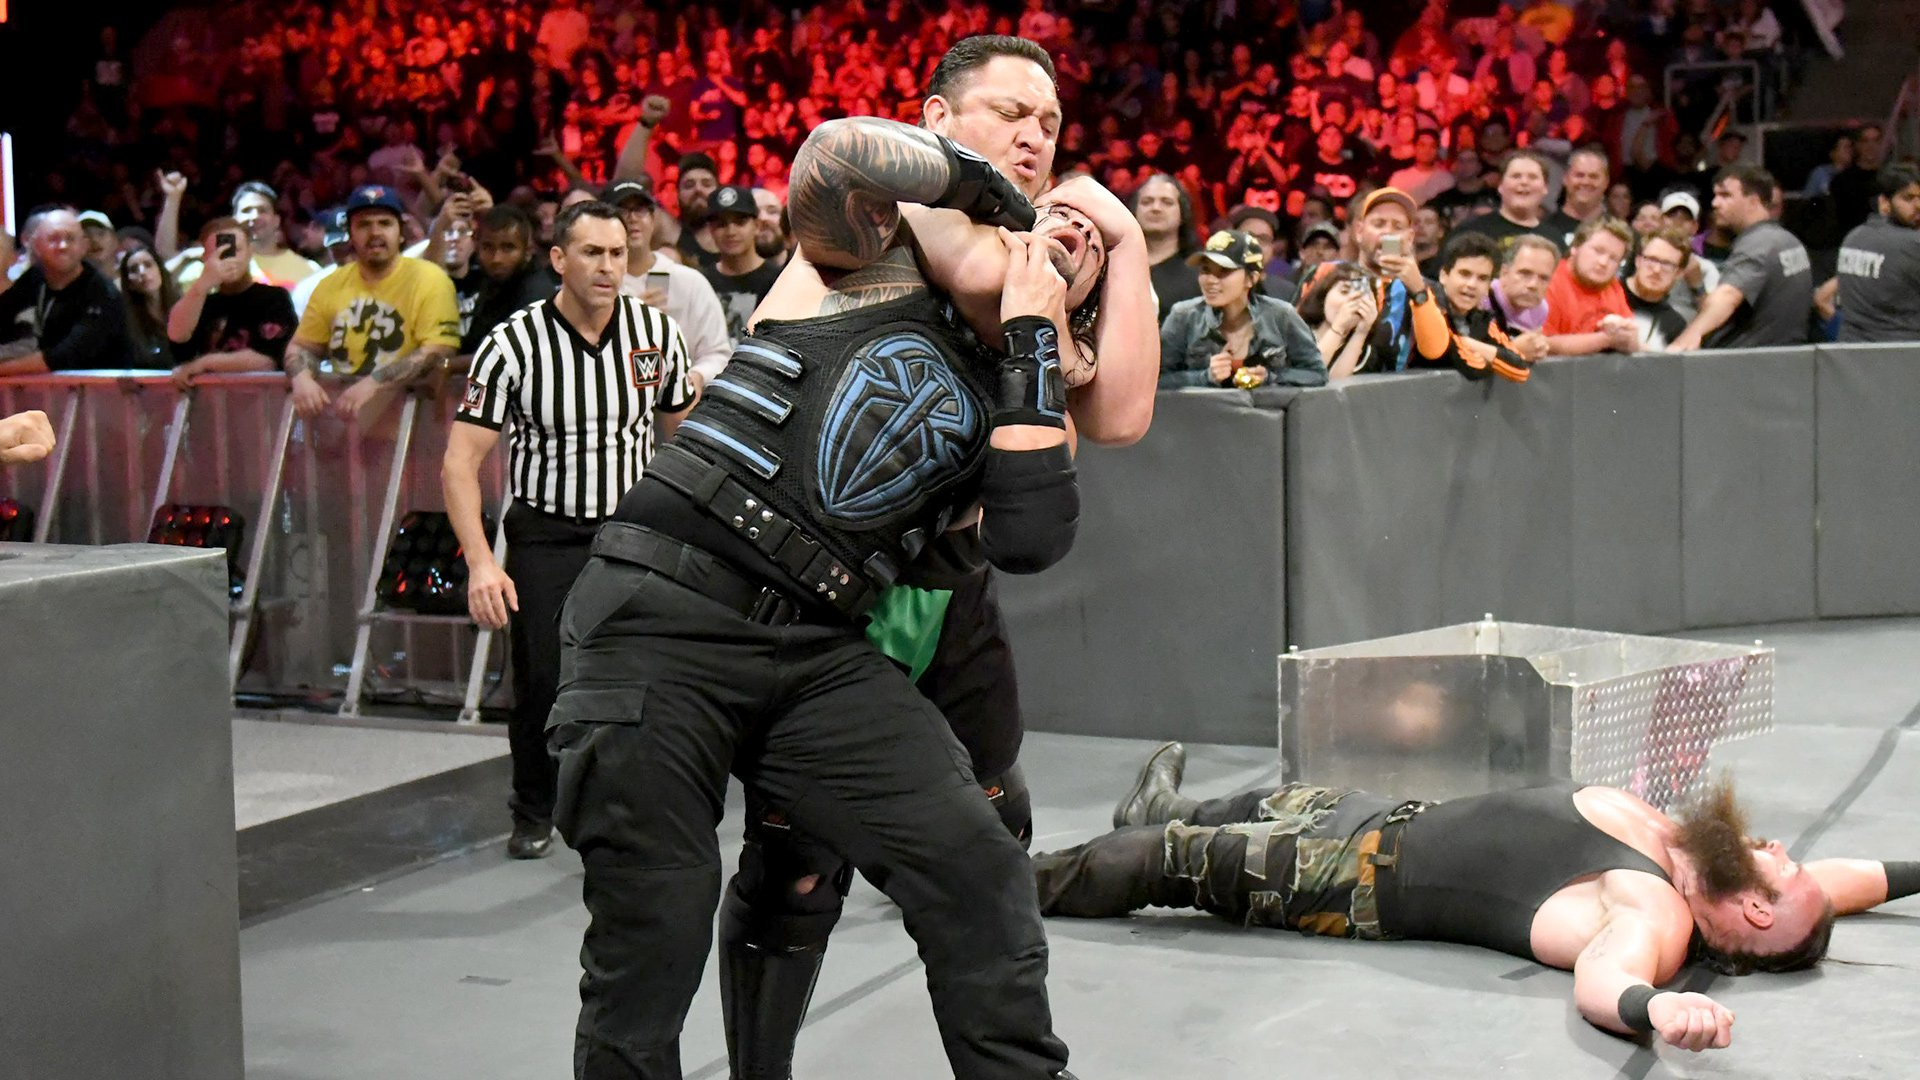 Suddenly, Samoa Joe emerges from the crowd and locks Roman Reigns in the Coquina Clutch!